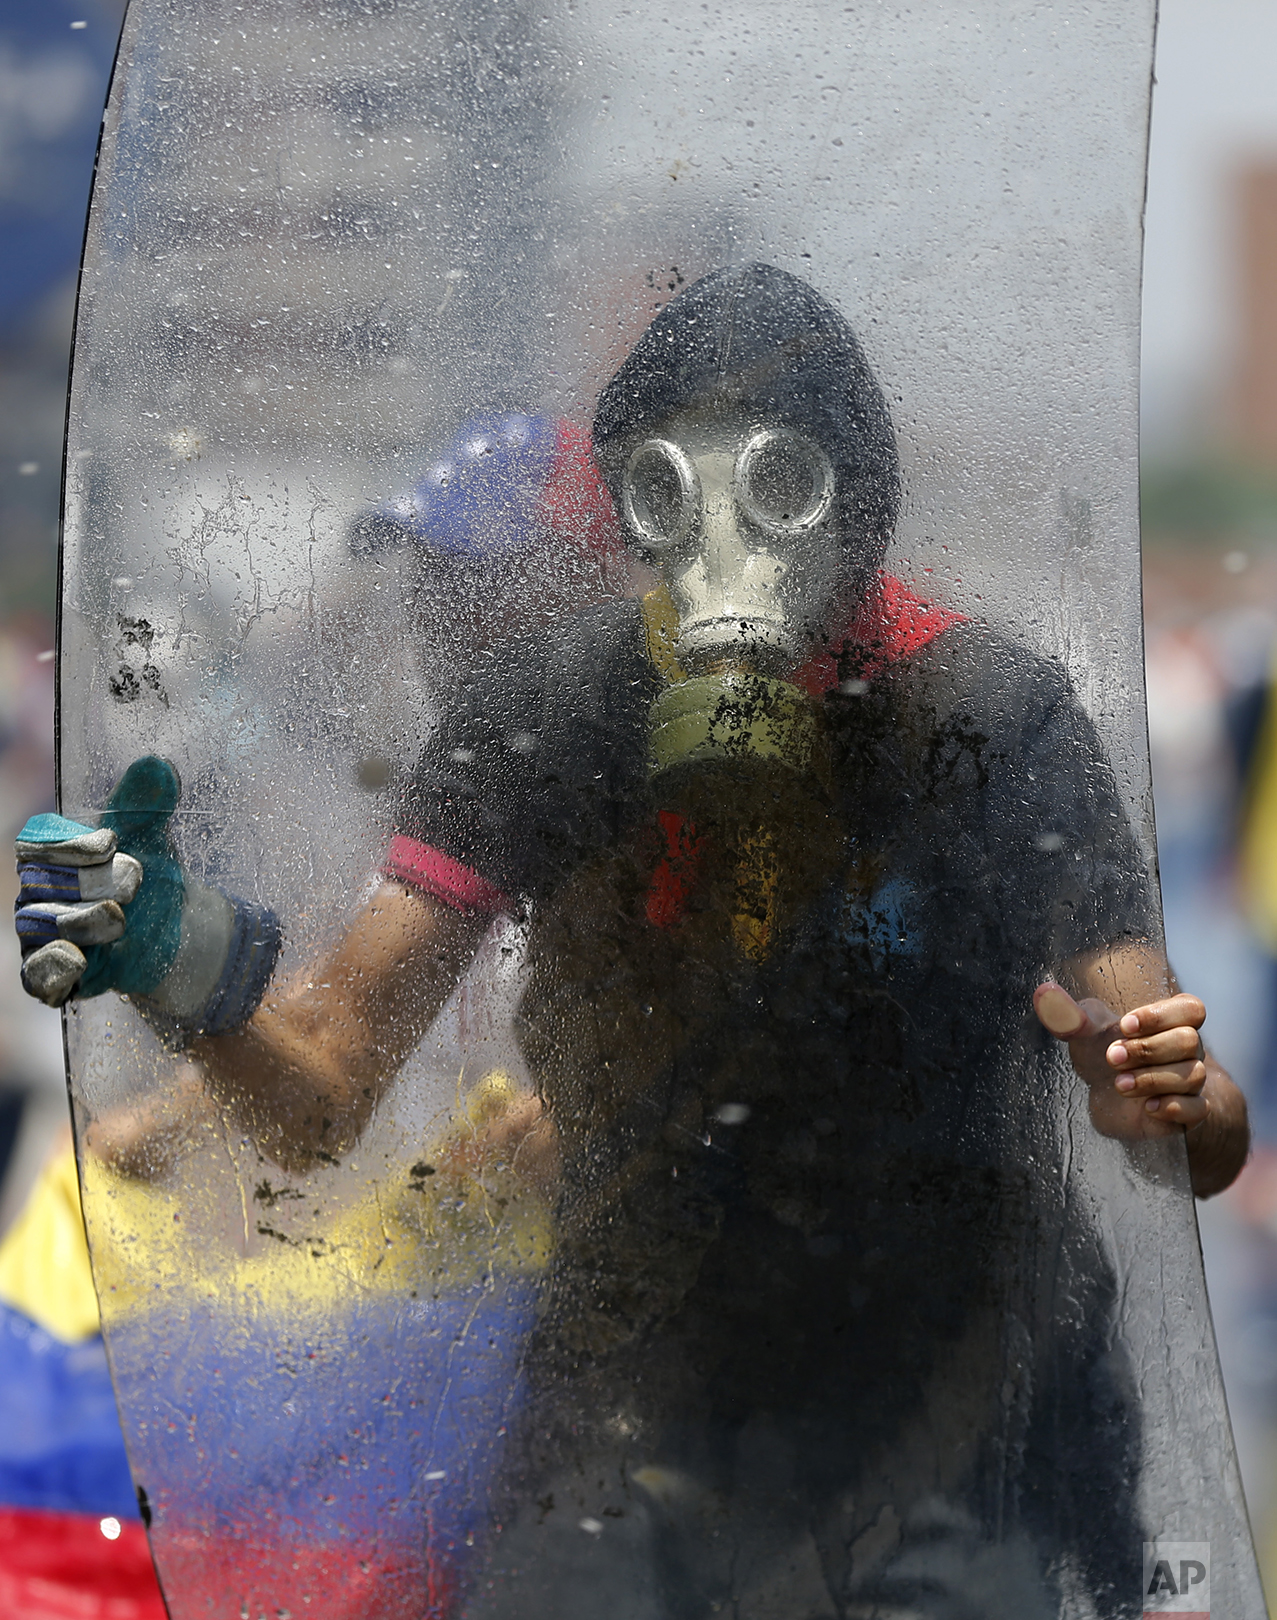 A protester holds an acrylic shield during clashes with security forces blocking opponents of President Nicolas Maduro in Caracas, Venezuela, Wednesday, April 26, 2017. Venezuela is threatening to pull out of the Organization of American States as the government's response to political unrest blamed for 27 deaths in recent weeks draws rebuke from the hemisphere's major powers. (AP Photo/Ariana Cubillos)